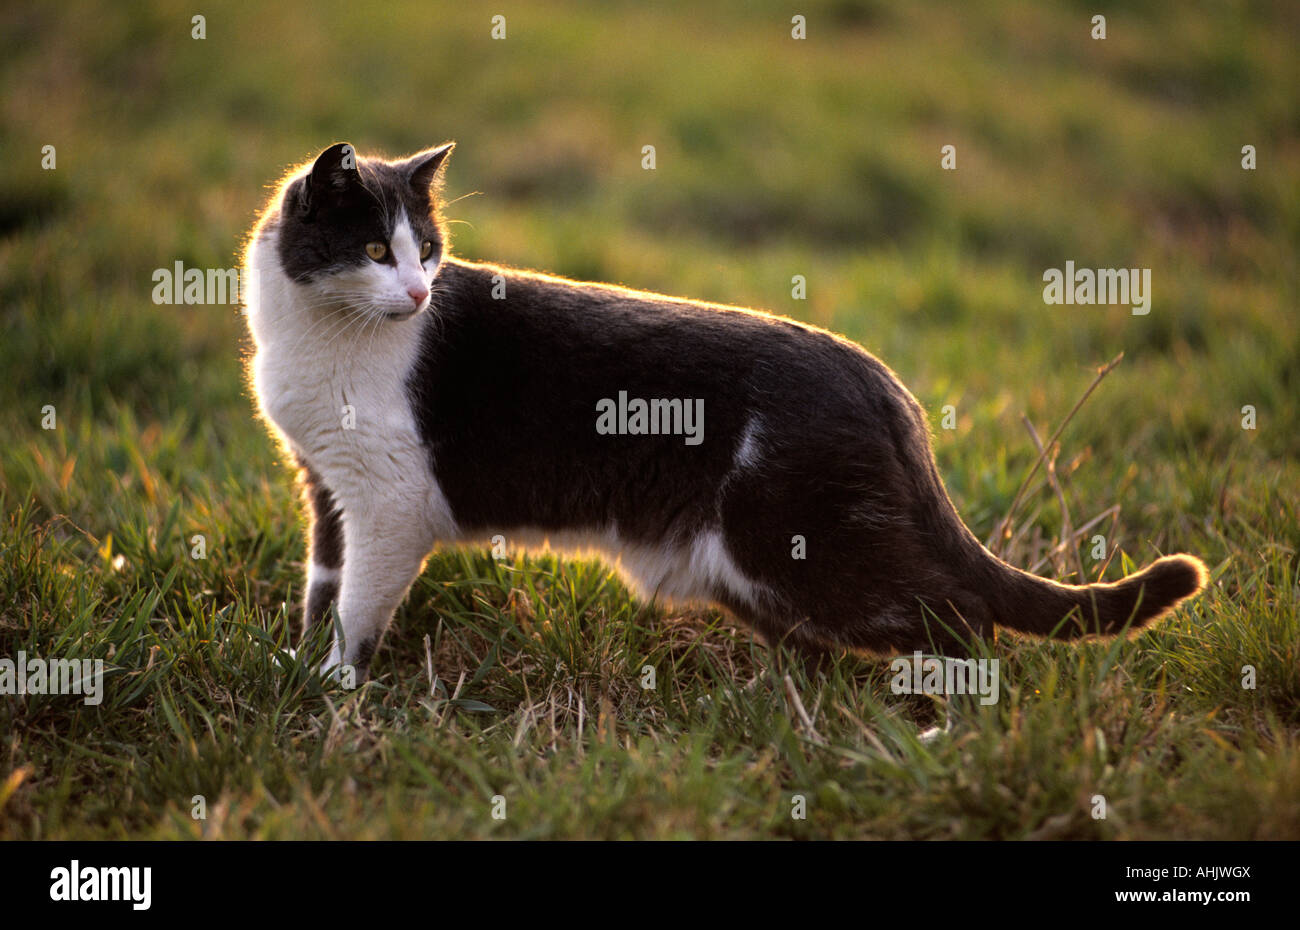 Schwarzweiße Hauskatze in Wiese black and white domestic cat in meadow - Stock Image